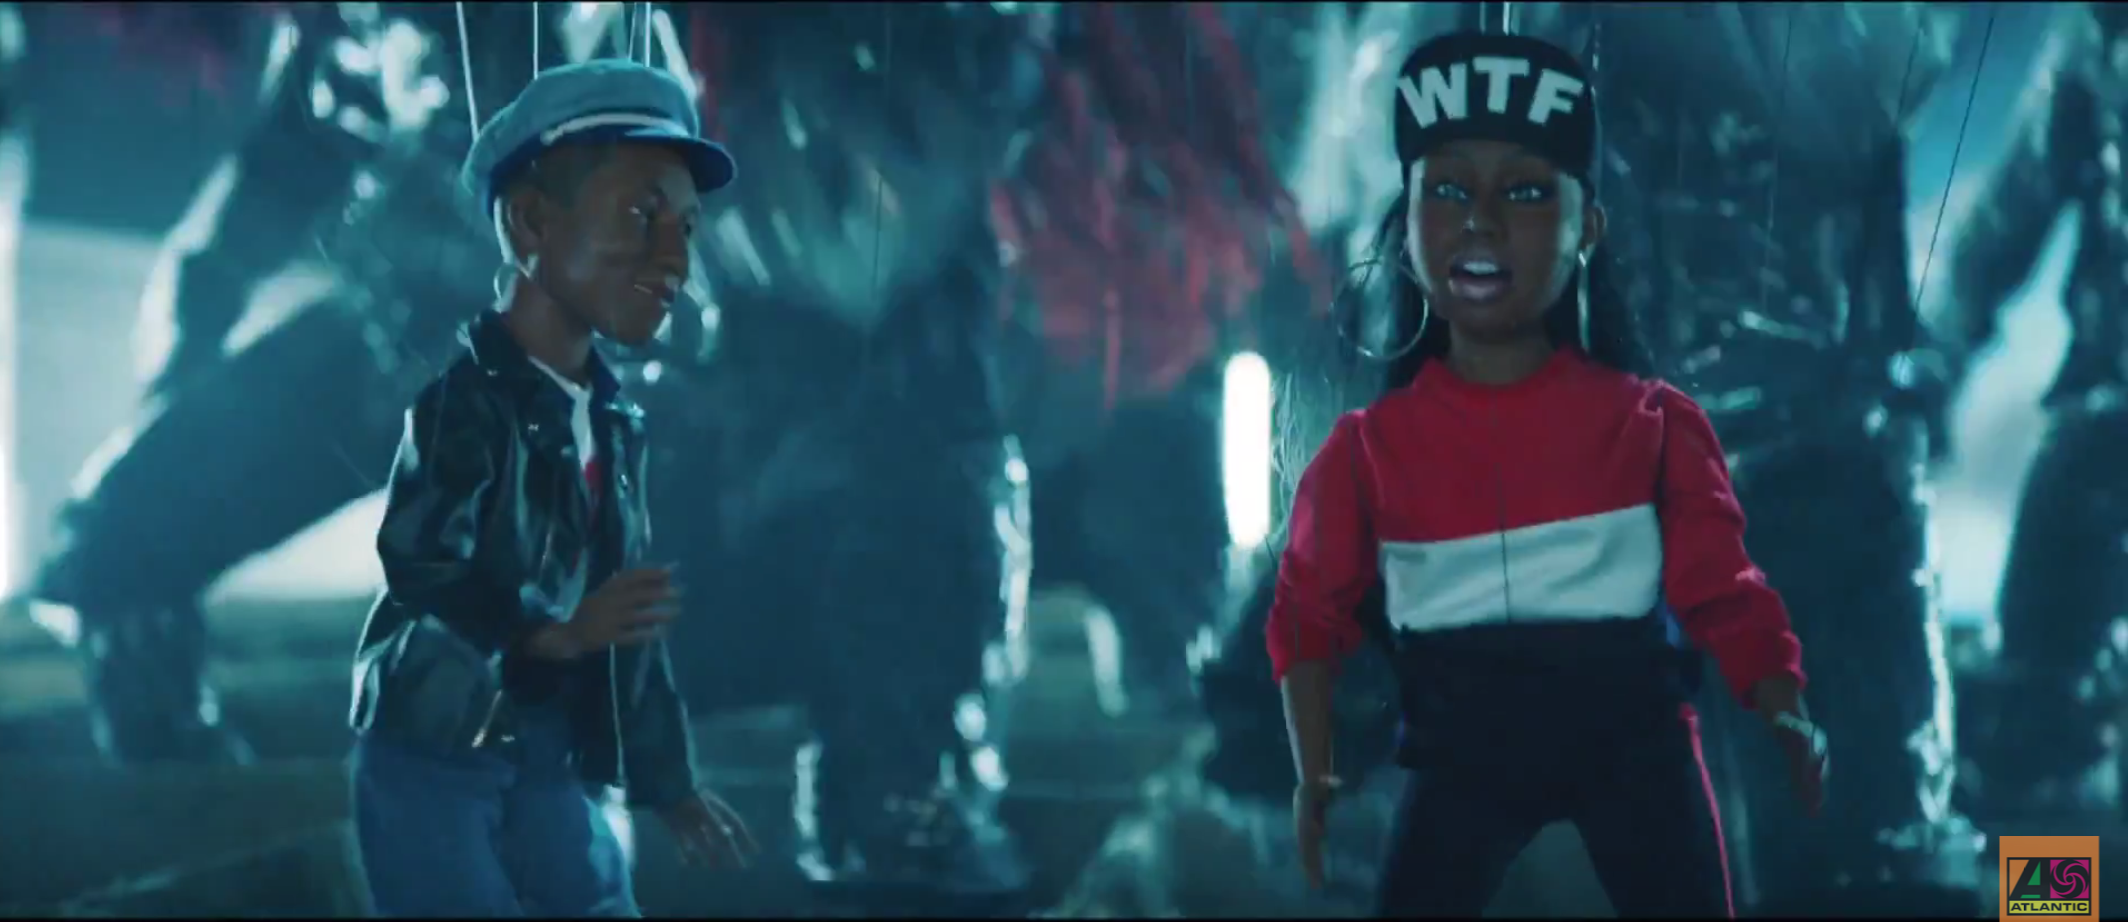 Missy Elliott Is Back With A Huge Beat And An Epic New Video! feat. Pharrell Williams